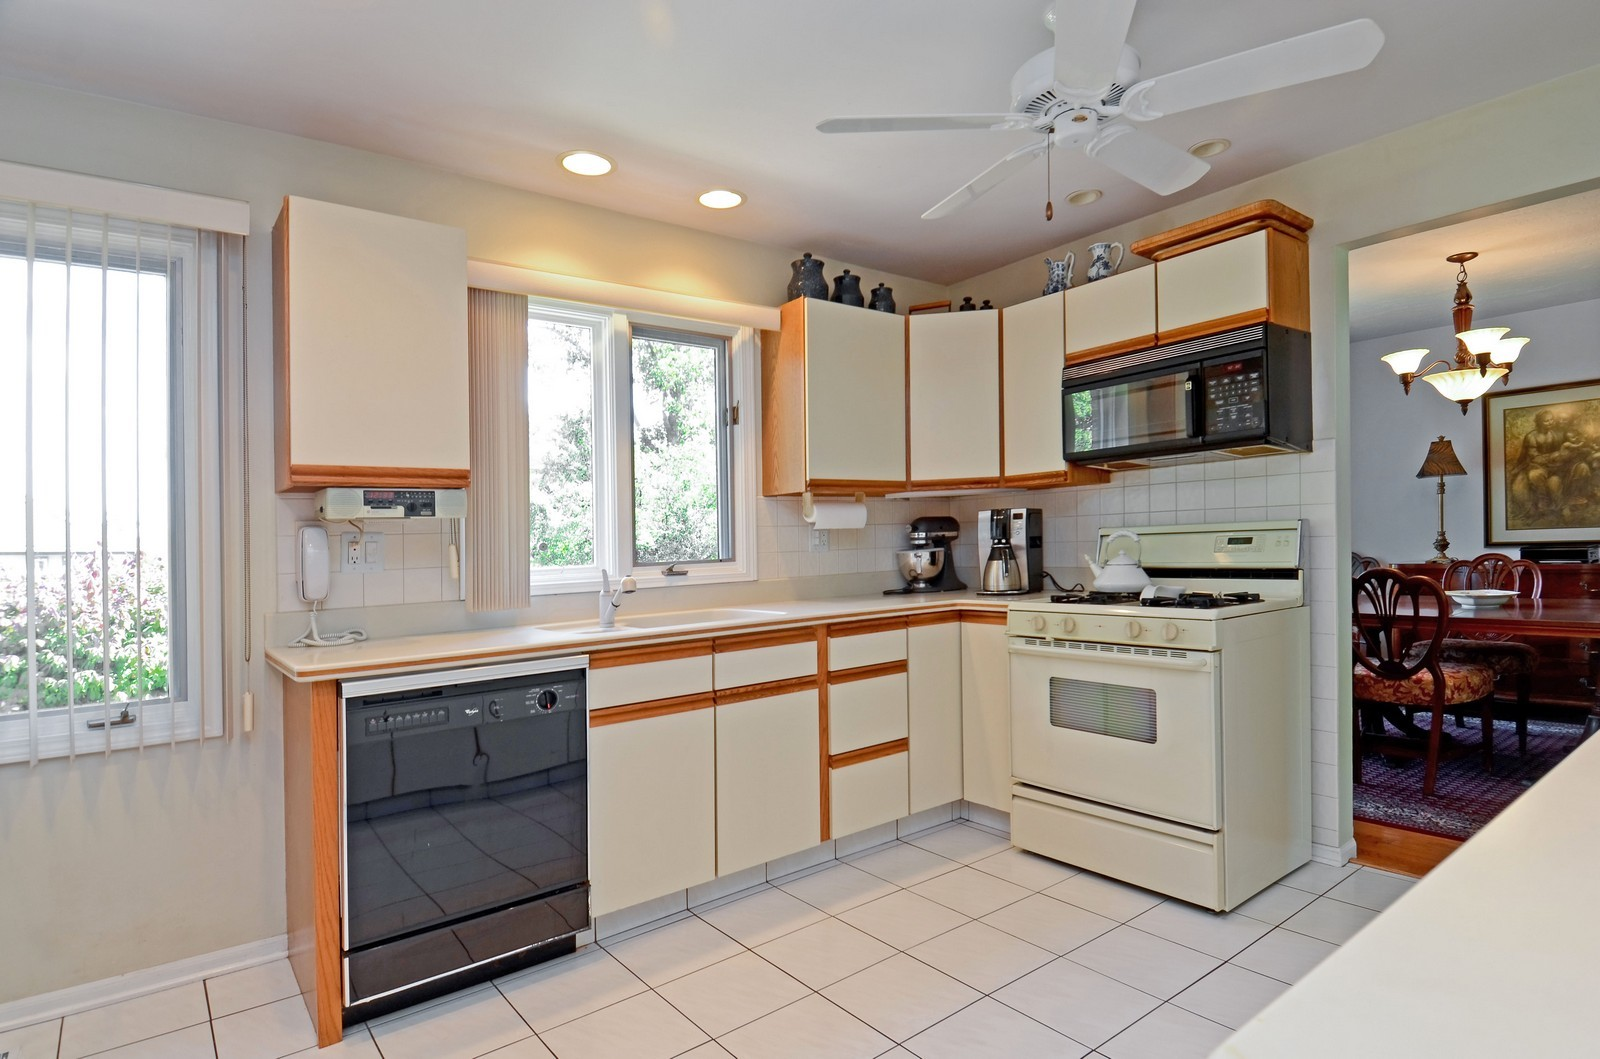 Real Estate Photography - 367 S Edgewood, Wood Dale, IL, 60191 - Kitchen